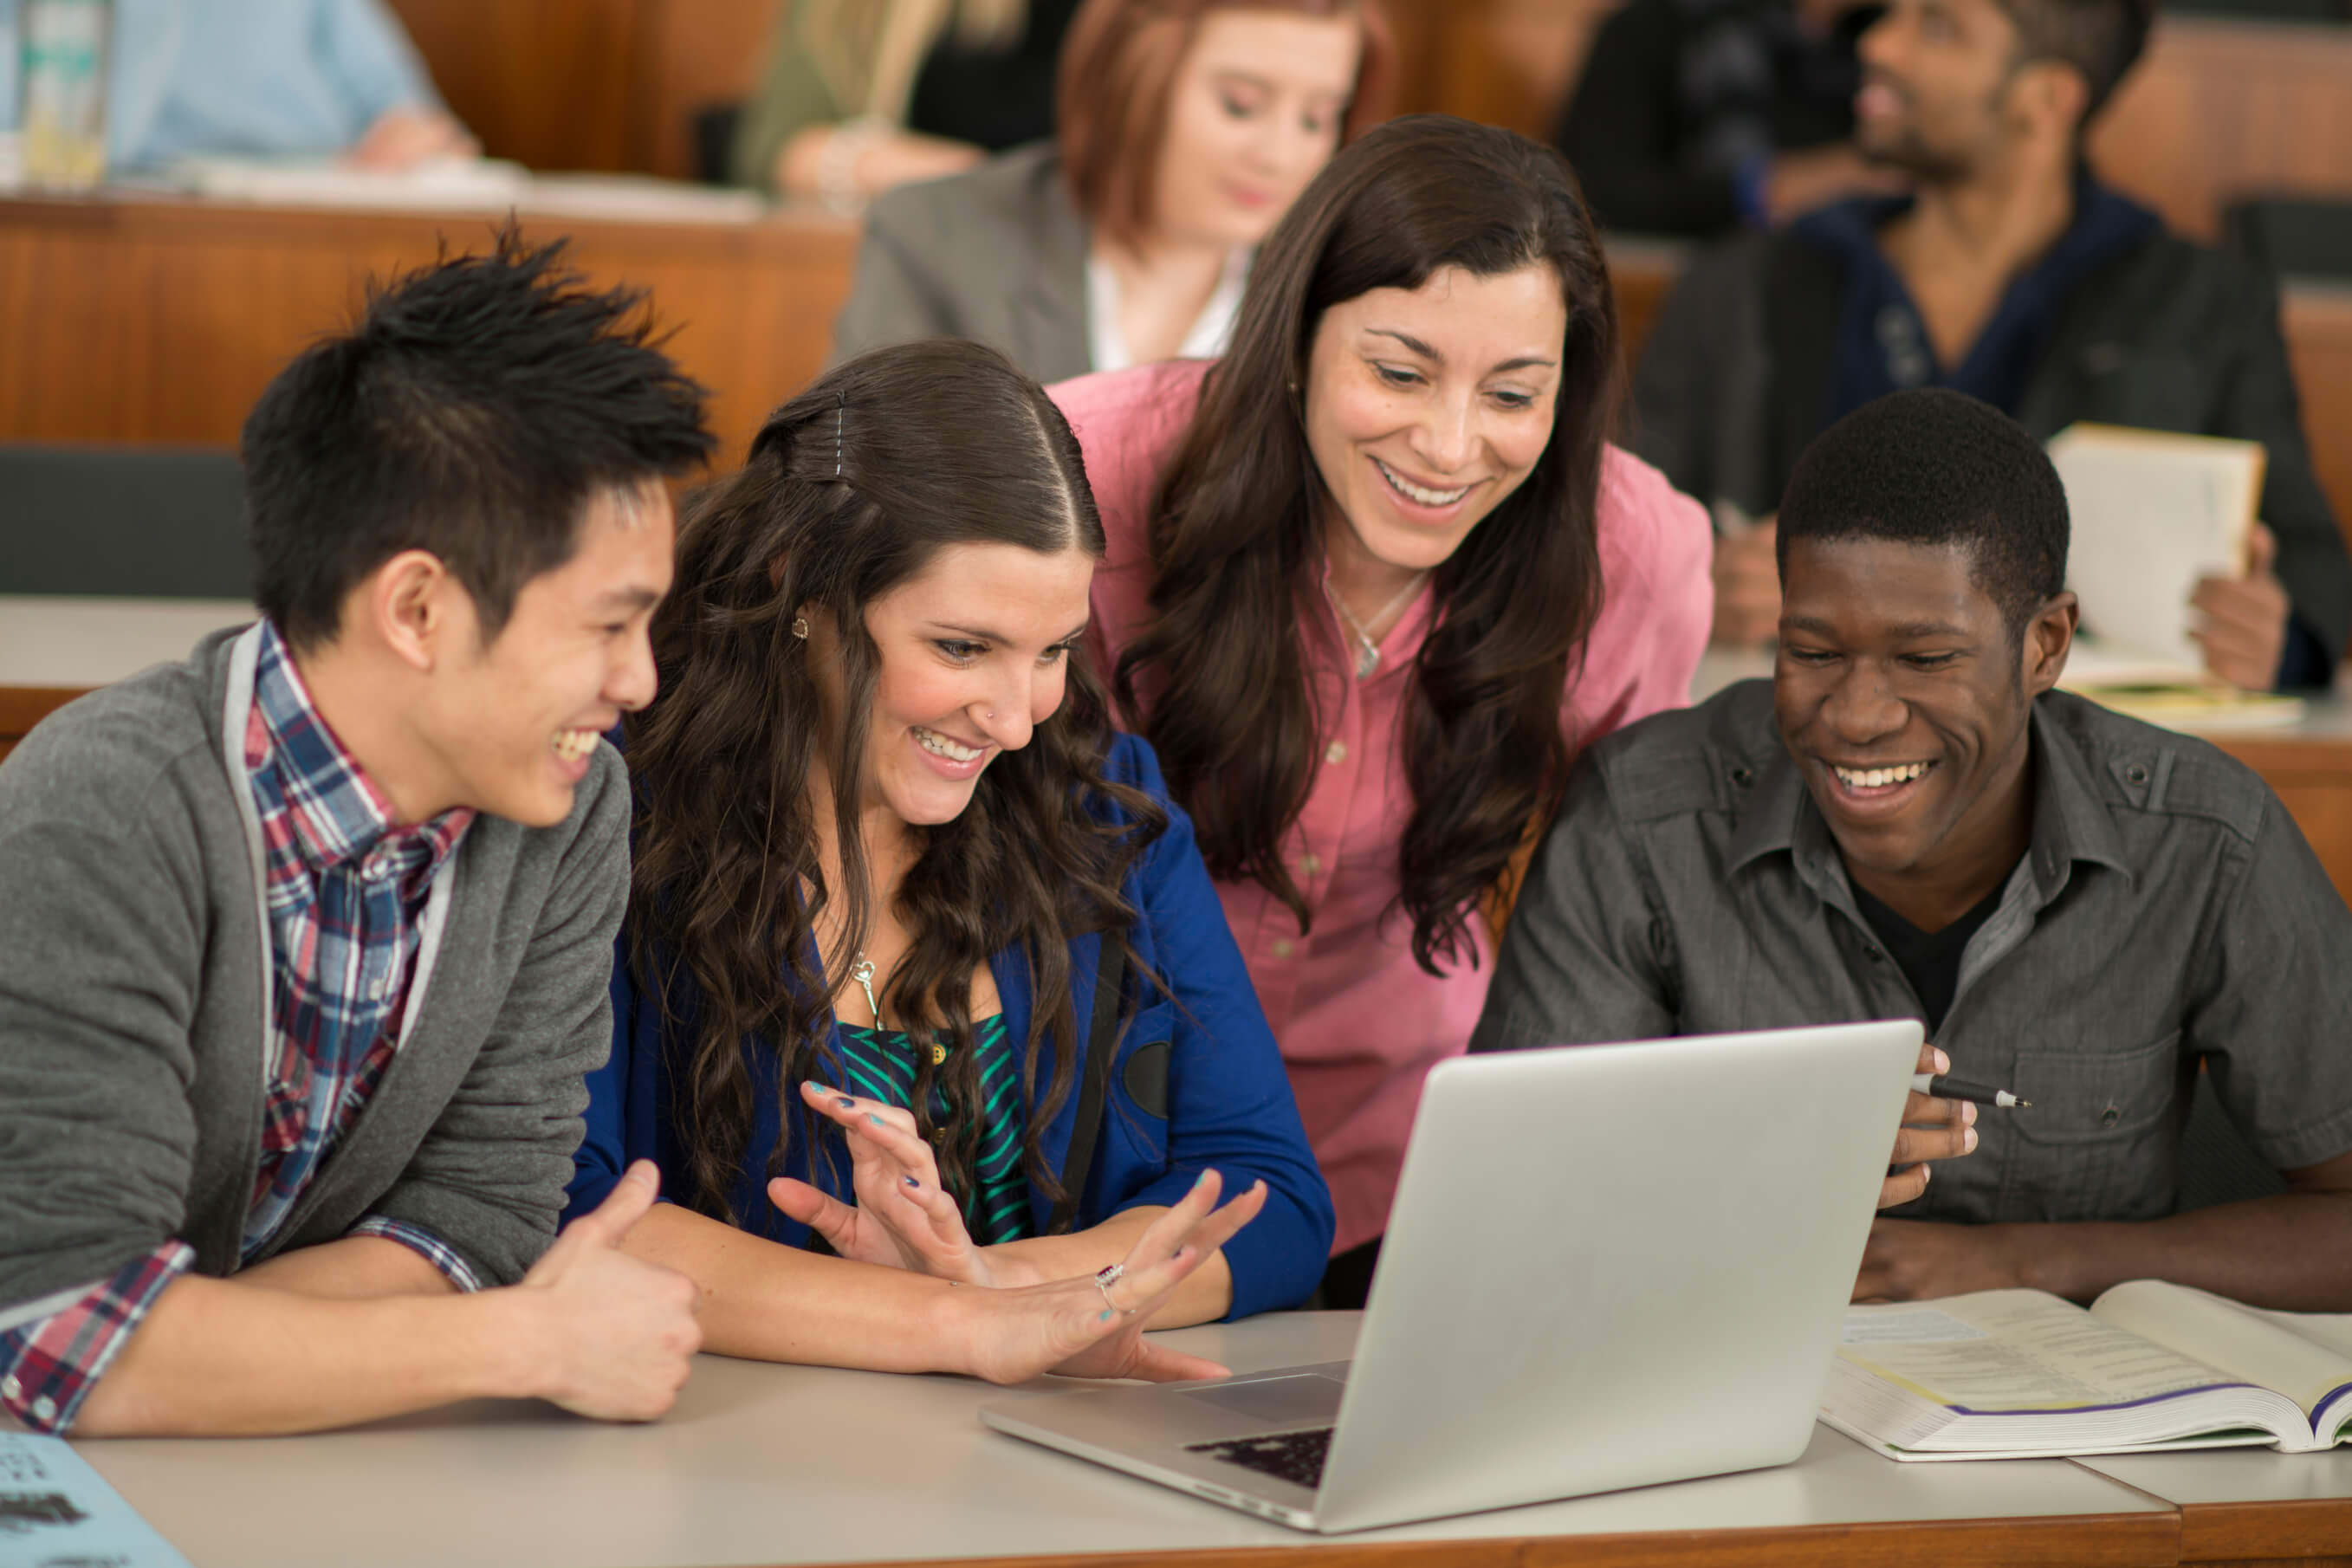 cawit_people_universities_students